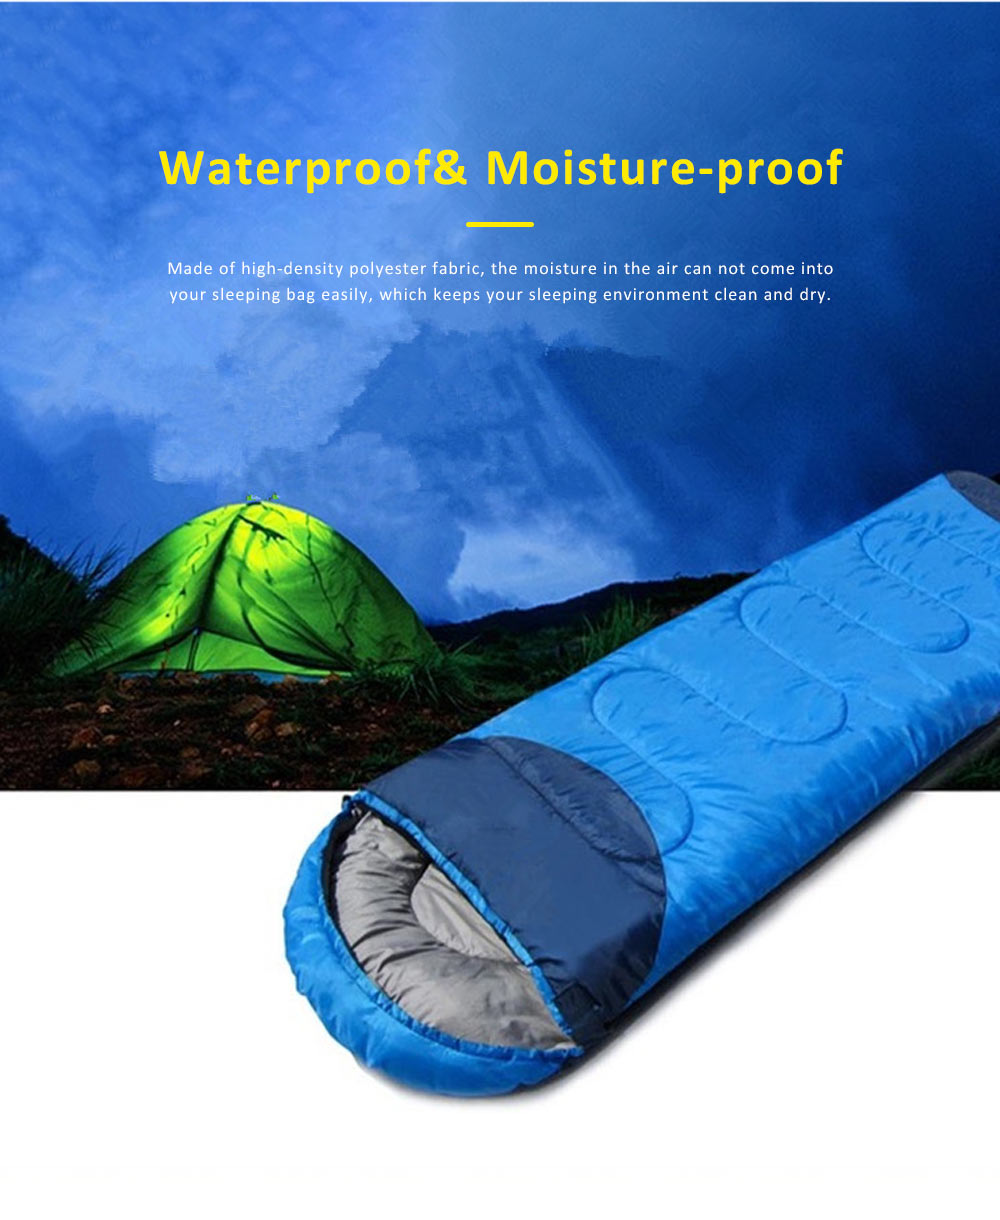 Portable Sleeping Sack Camping Equipment, Thicken Thermal High Quality Outdoor Bedding, One Kilogram Sleeping Bag for Adults 4